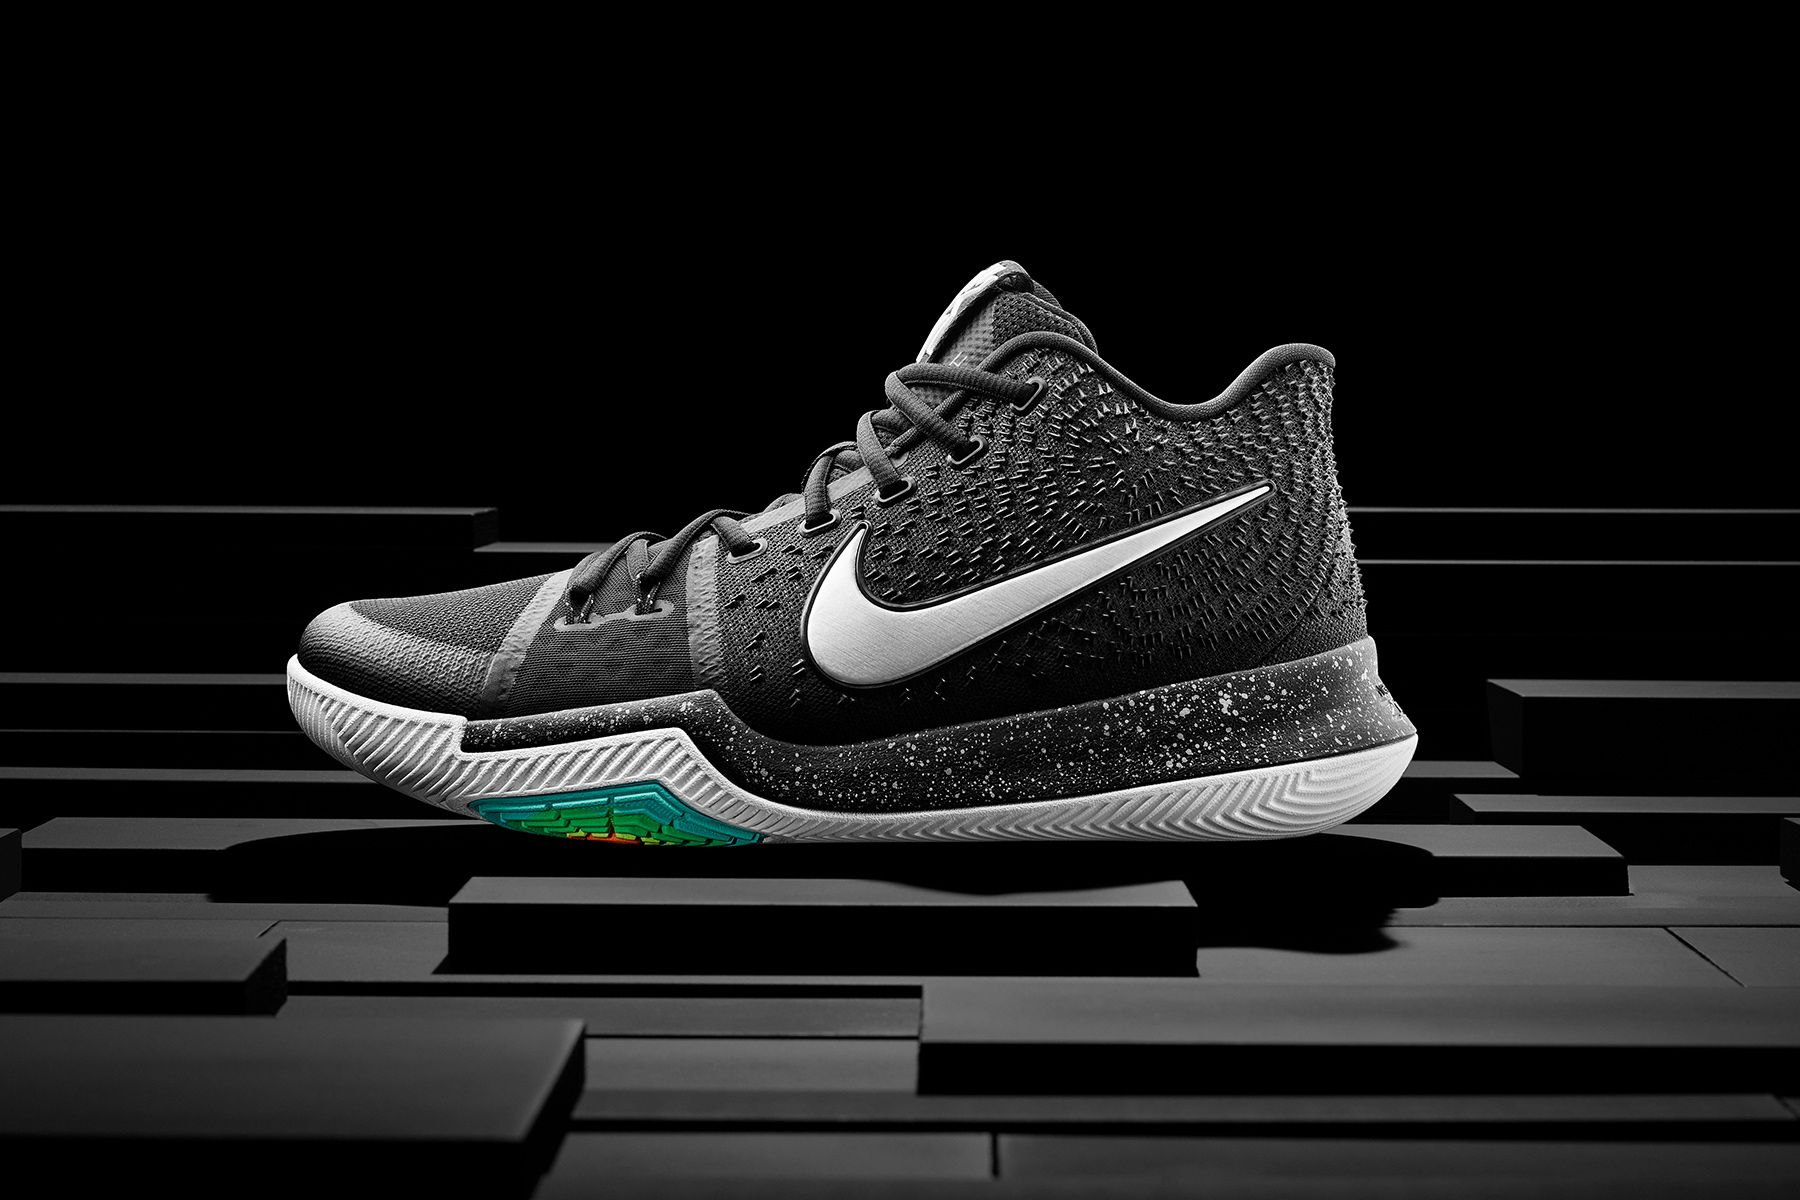 16-400_Nike_Kyrie_Hero_Single-01.jpg